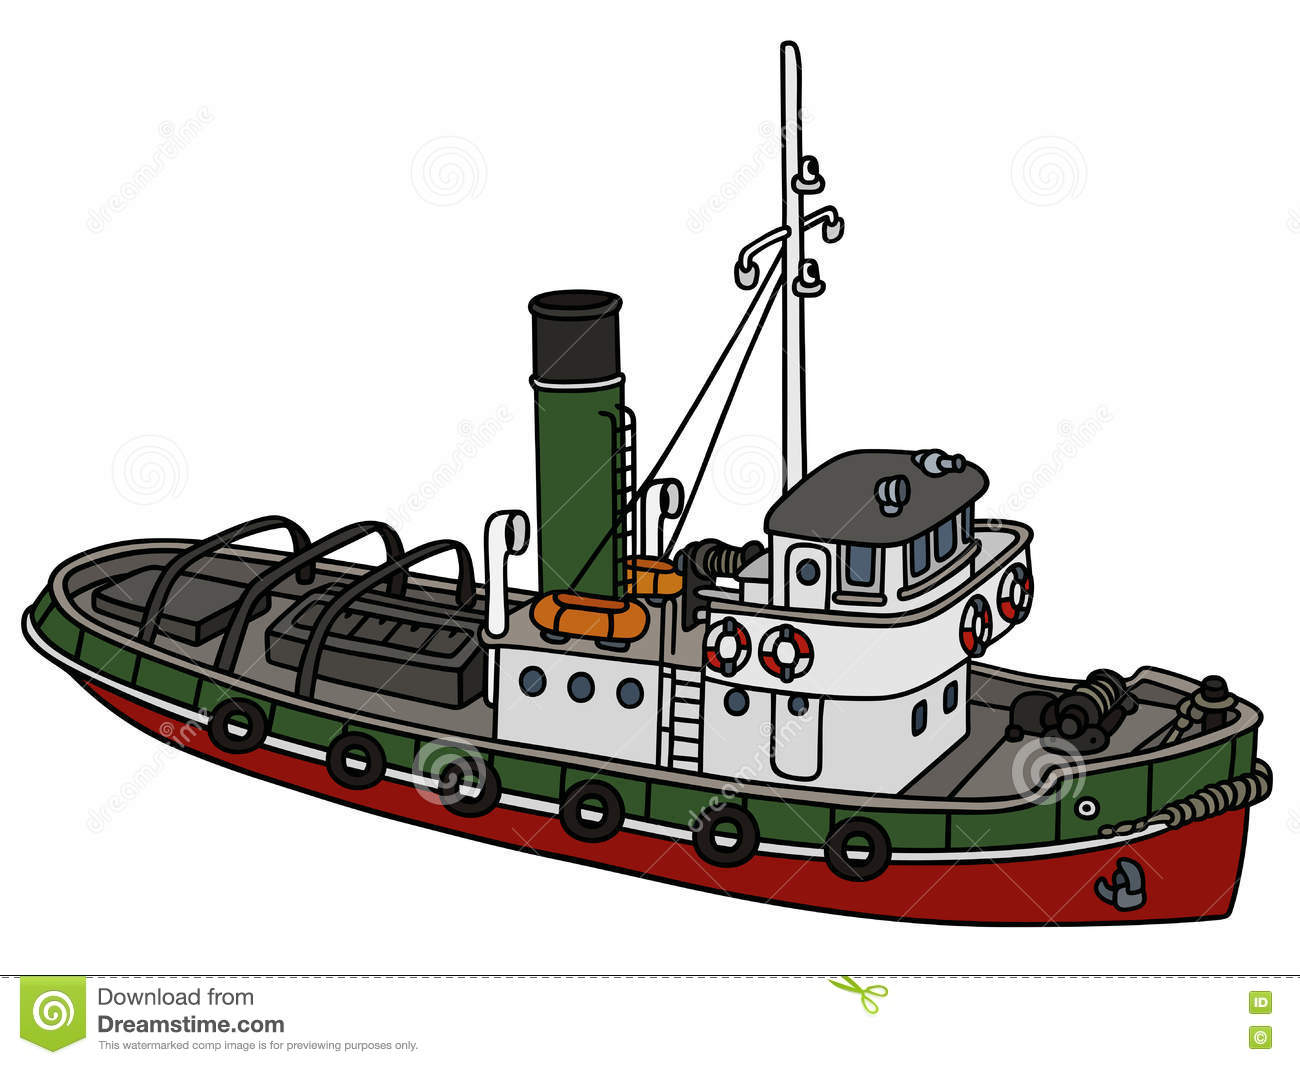 hight resolution of old tugboat hand drawing of an old tugboat not a real type stock illustration